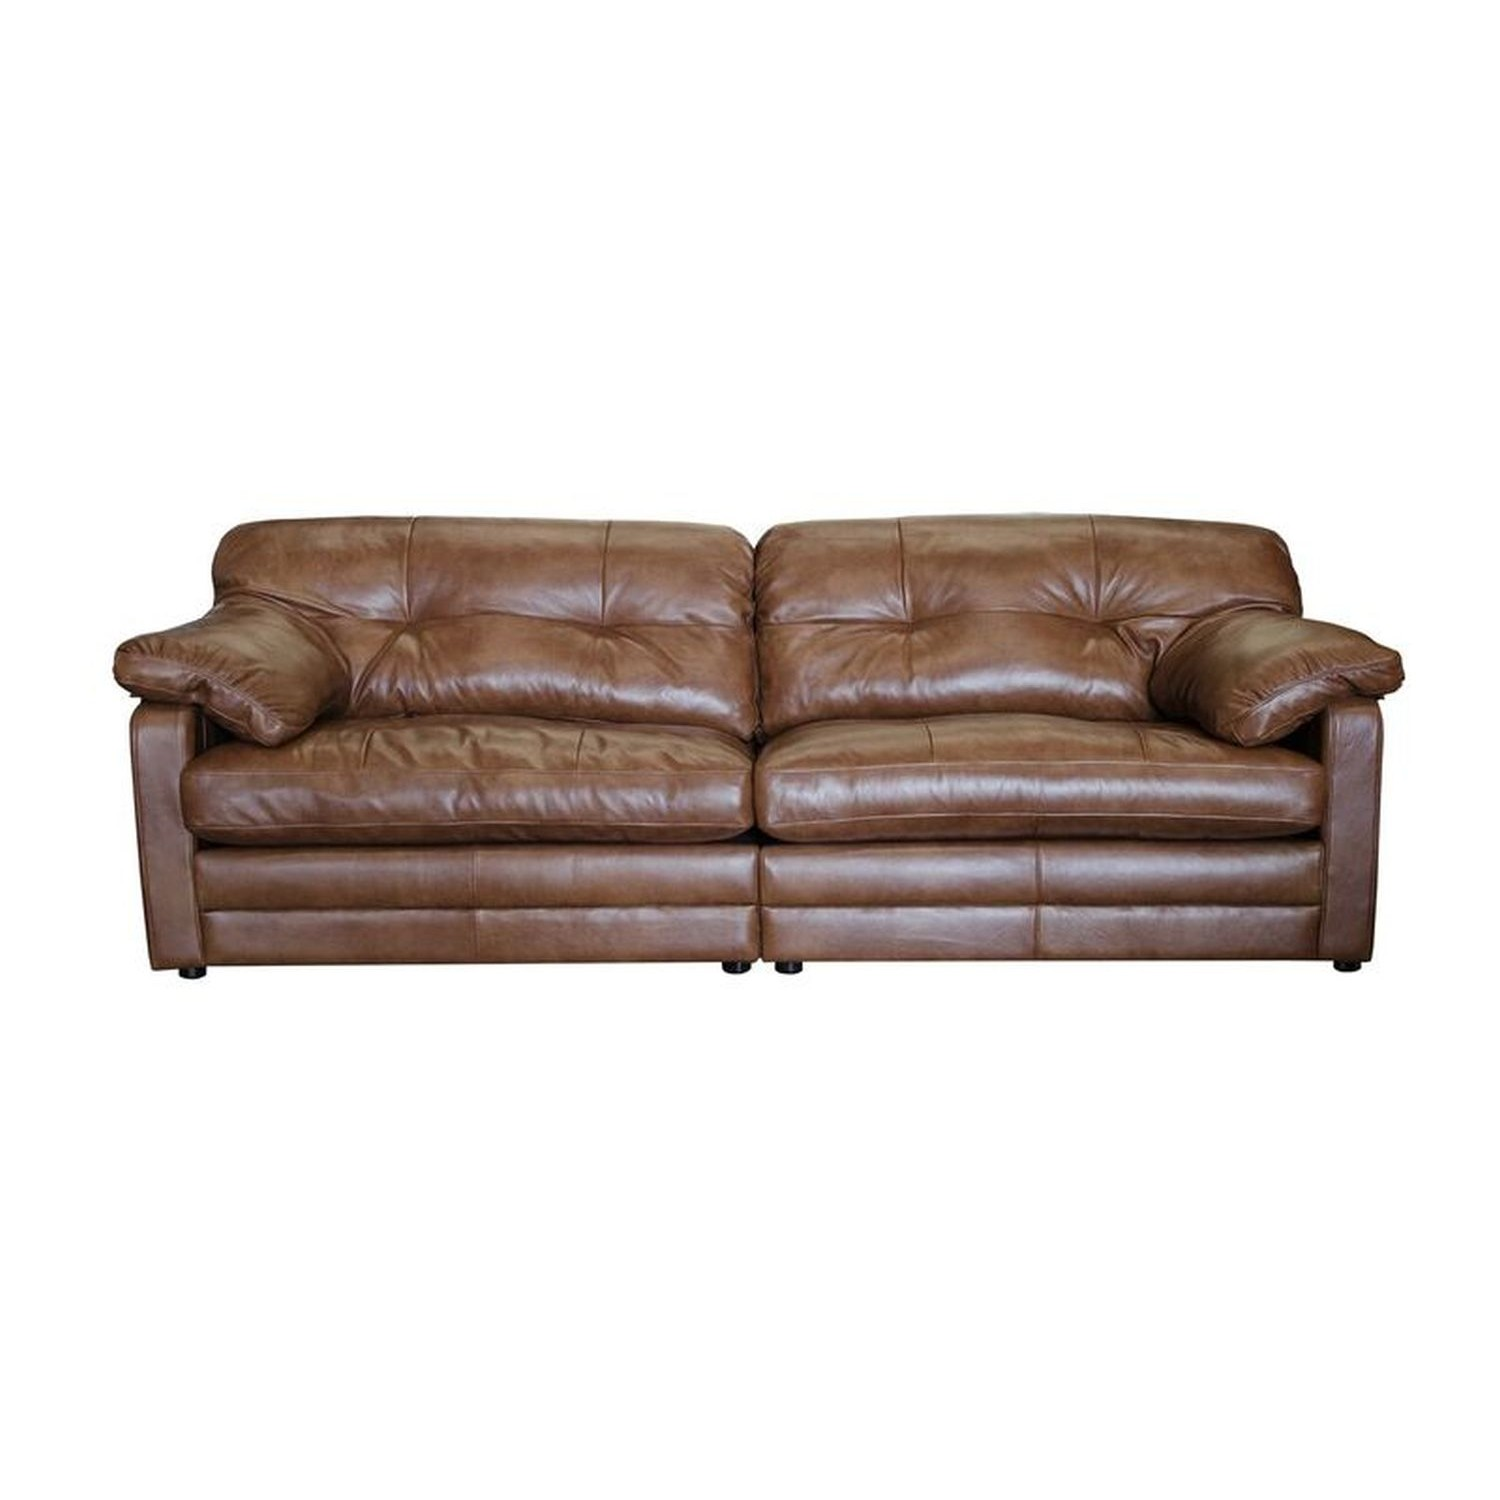 Miraculous Alexander James Bailey 4 Seater Split Leather Sofa Uwap Interior Chair Design Uwaporg